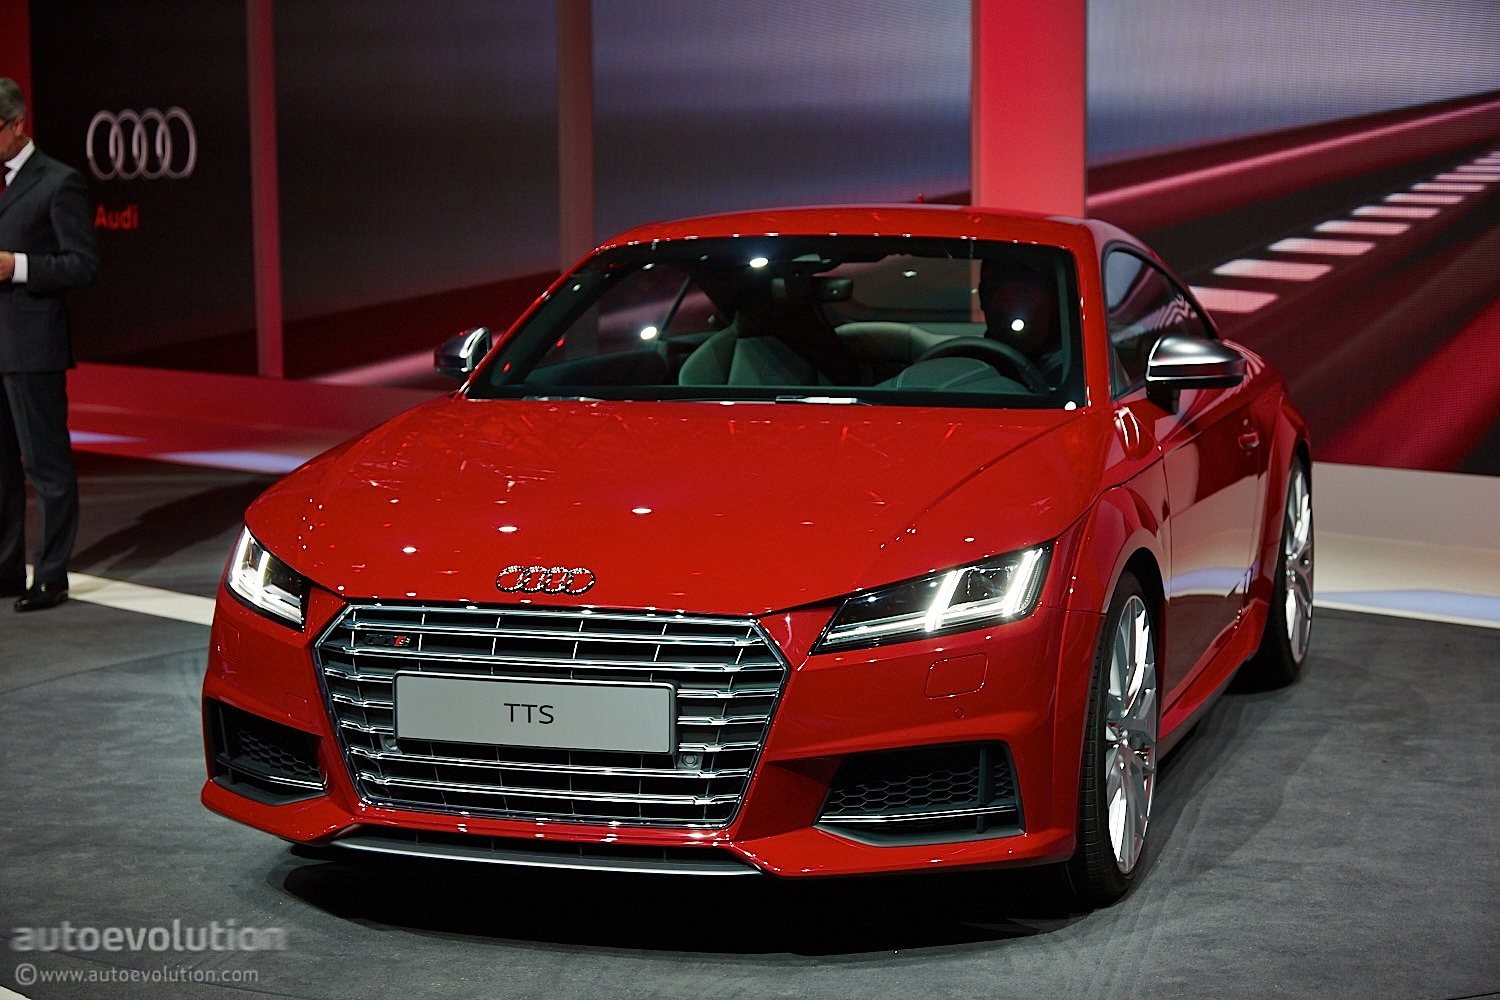 New Audi TT and TTS Coupes Get Evolutionary Styling and Impressive